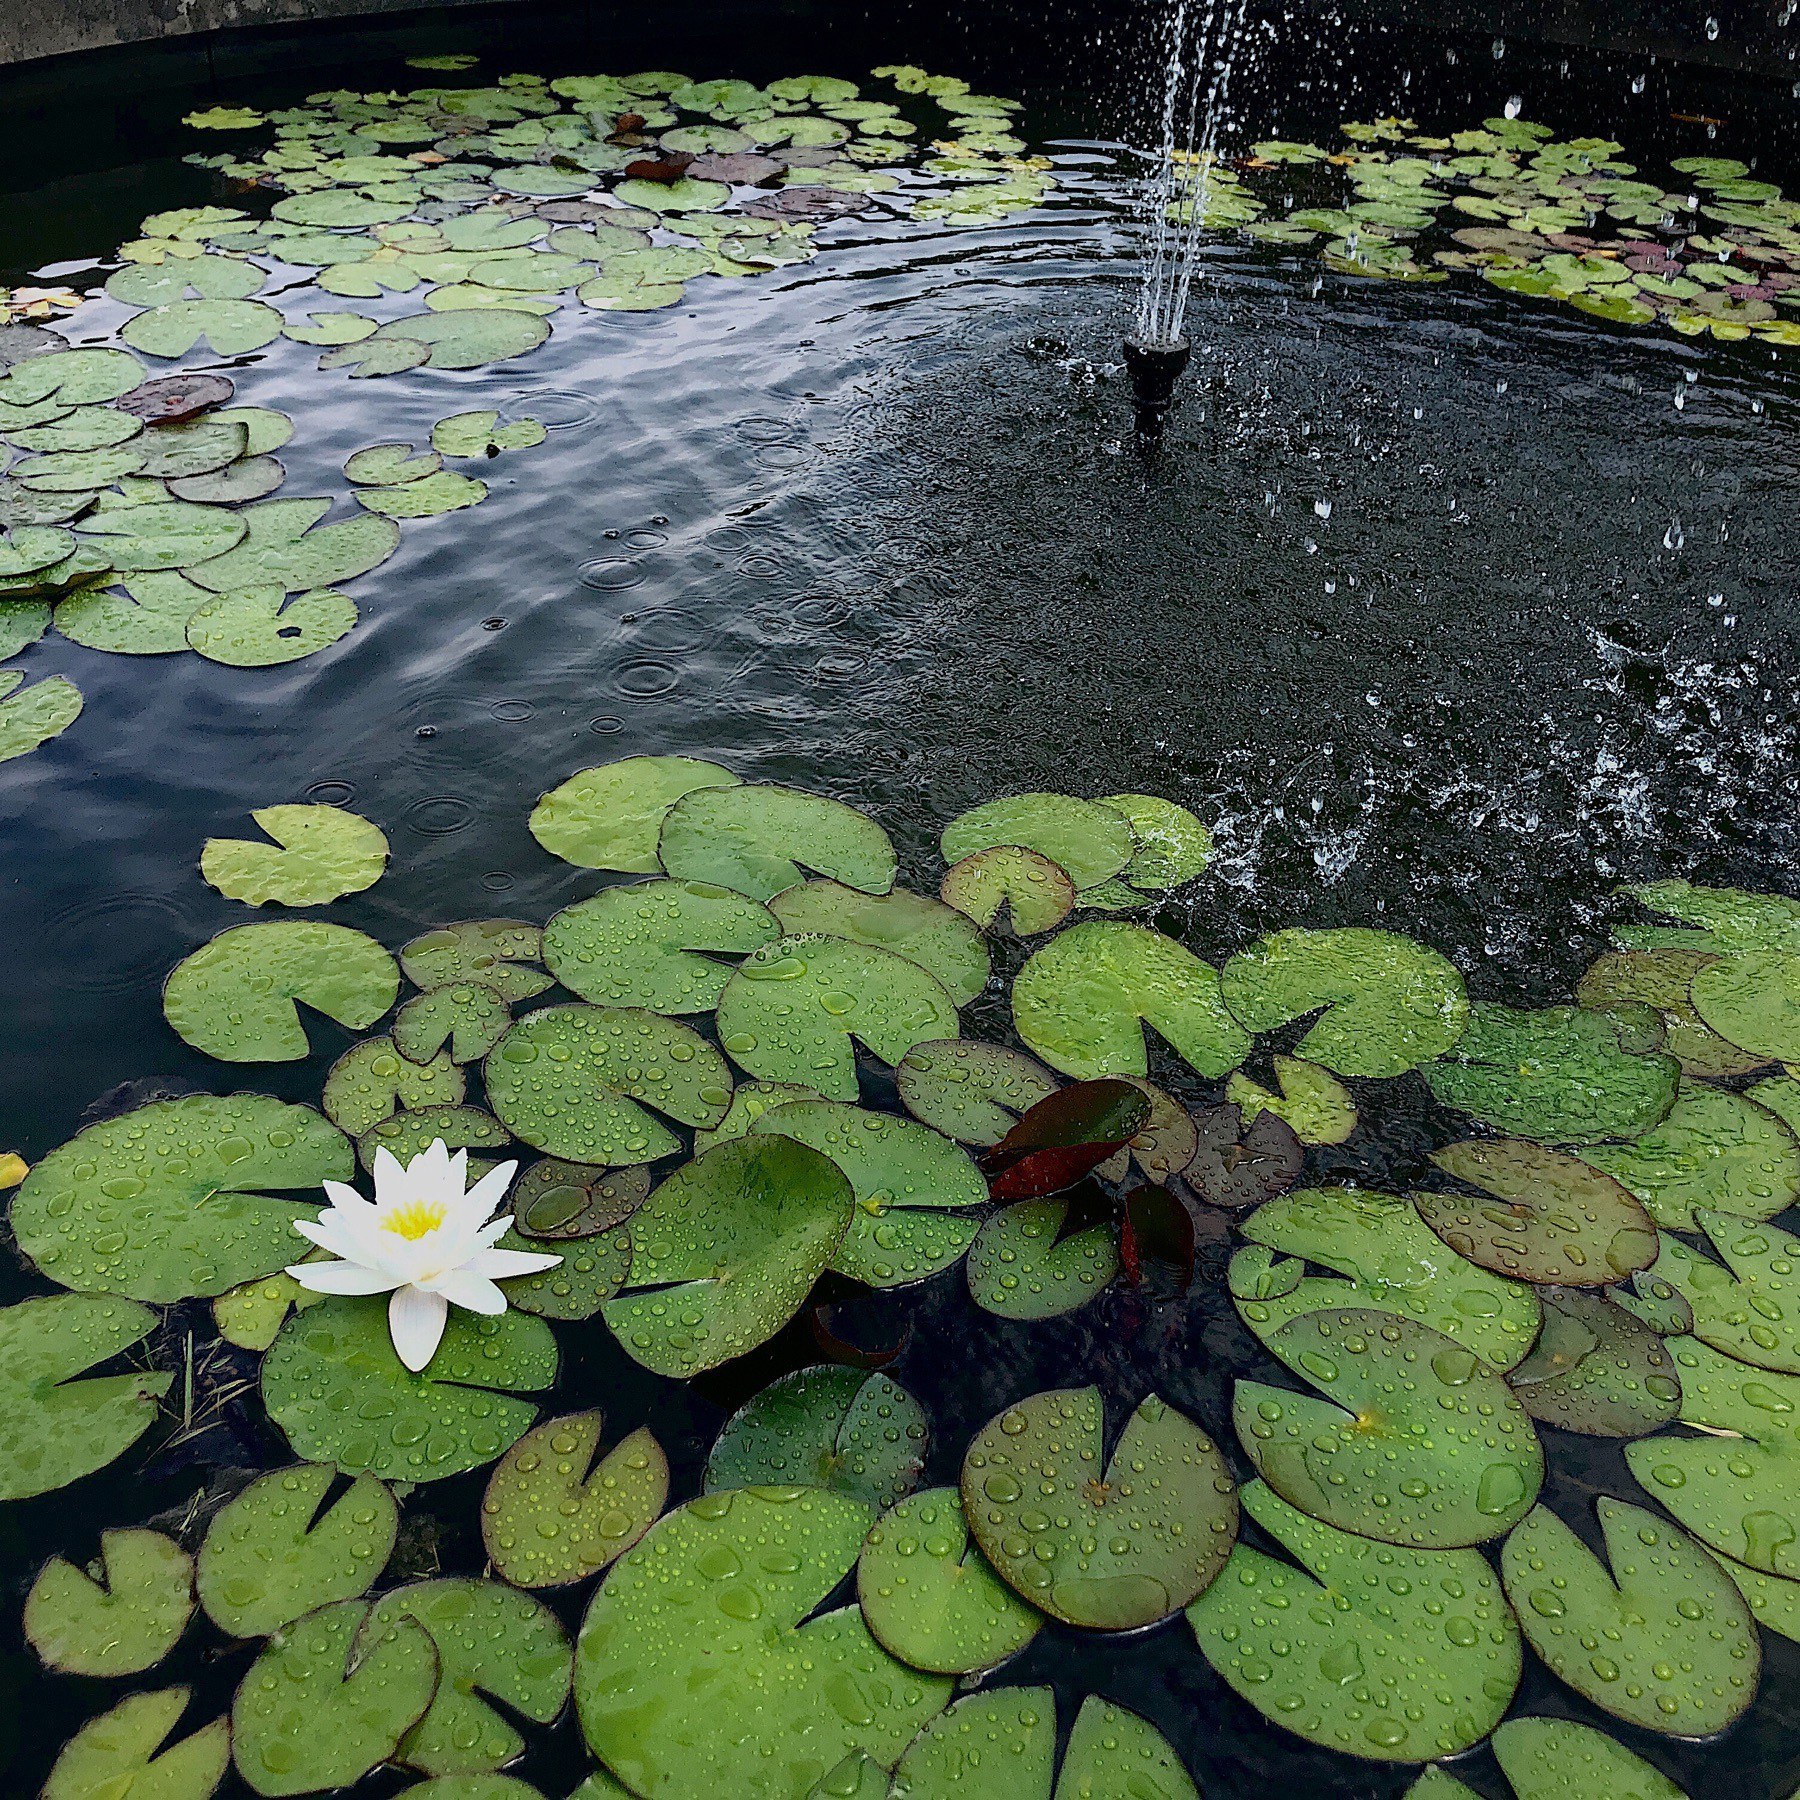 Lotus flowers and lily pads in water in fountain.